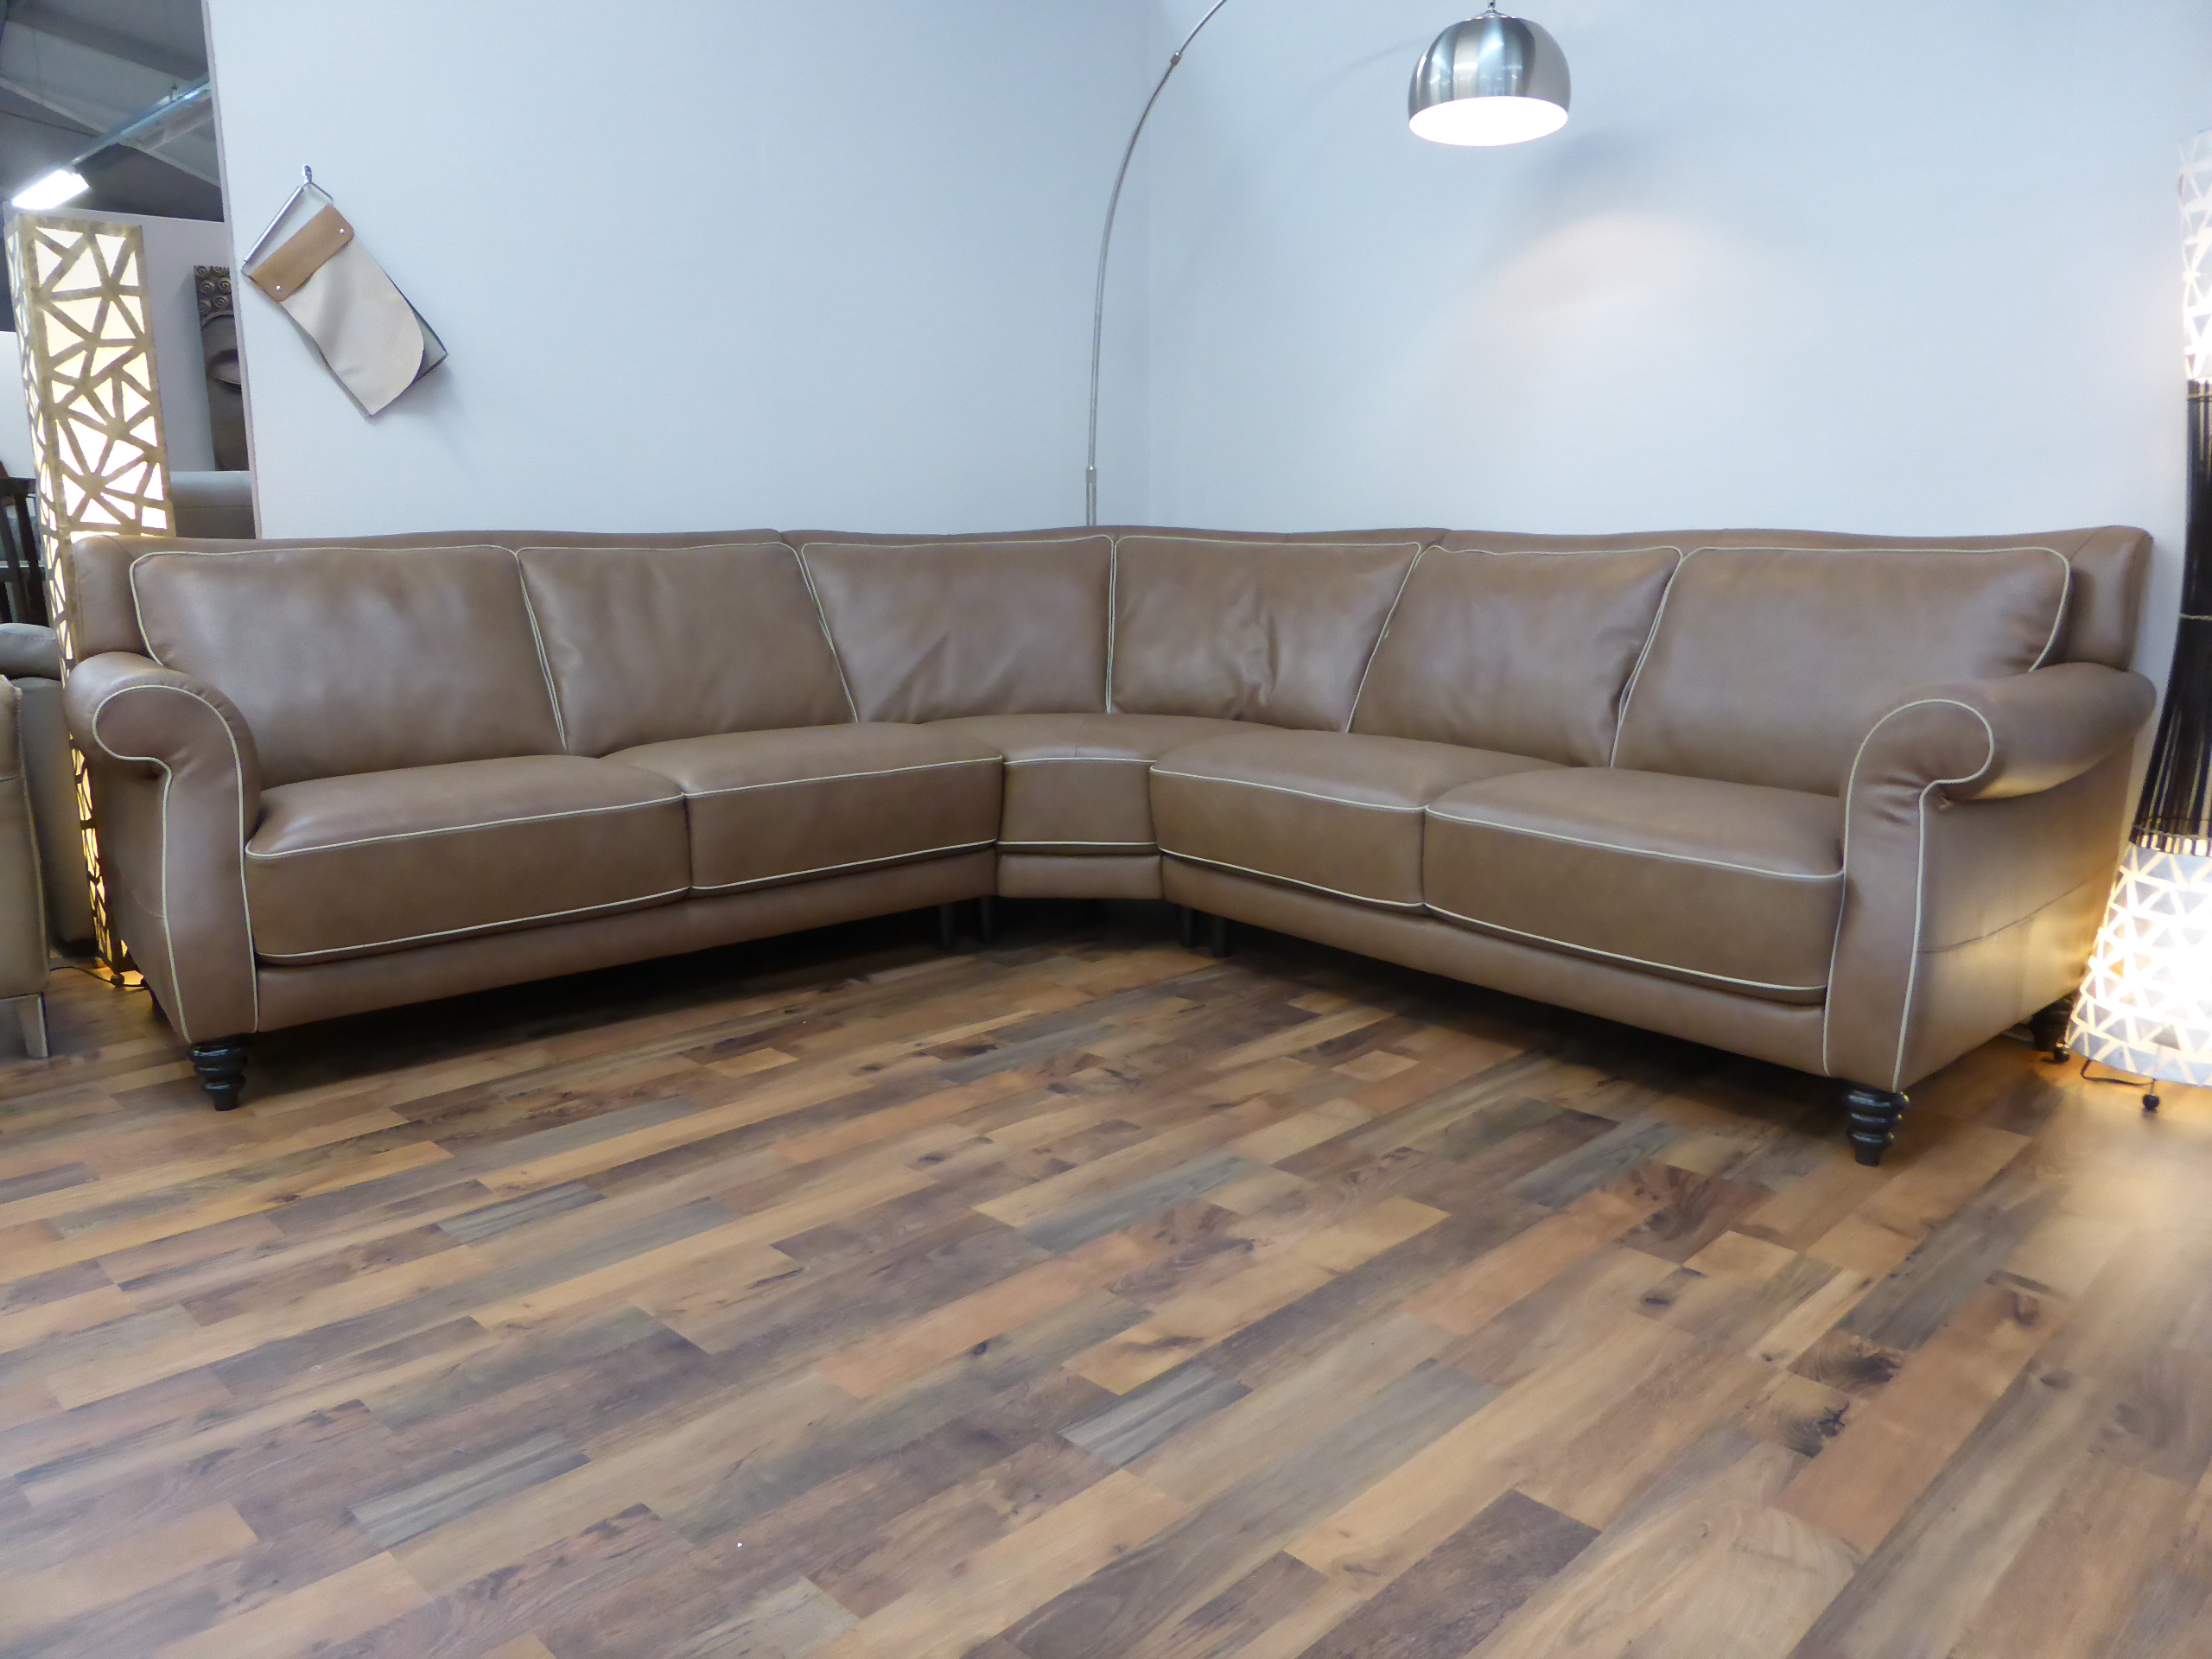 cheap italian leather sofas uk sofa for bedroom sitting area natuzzi editions wexford corner furnimax brands outlet